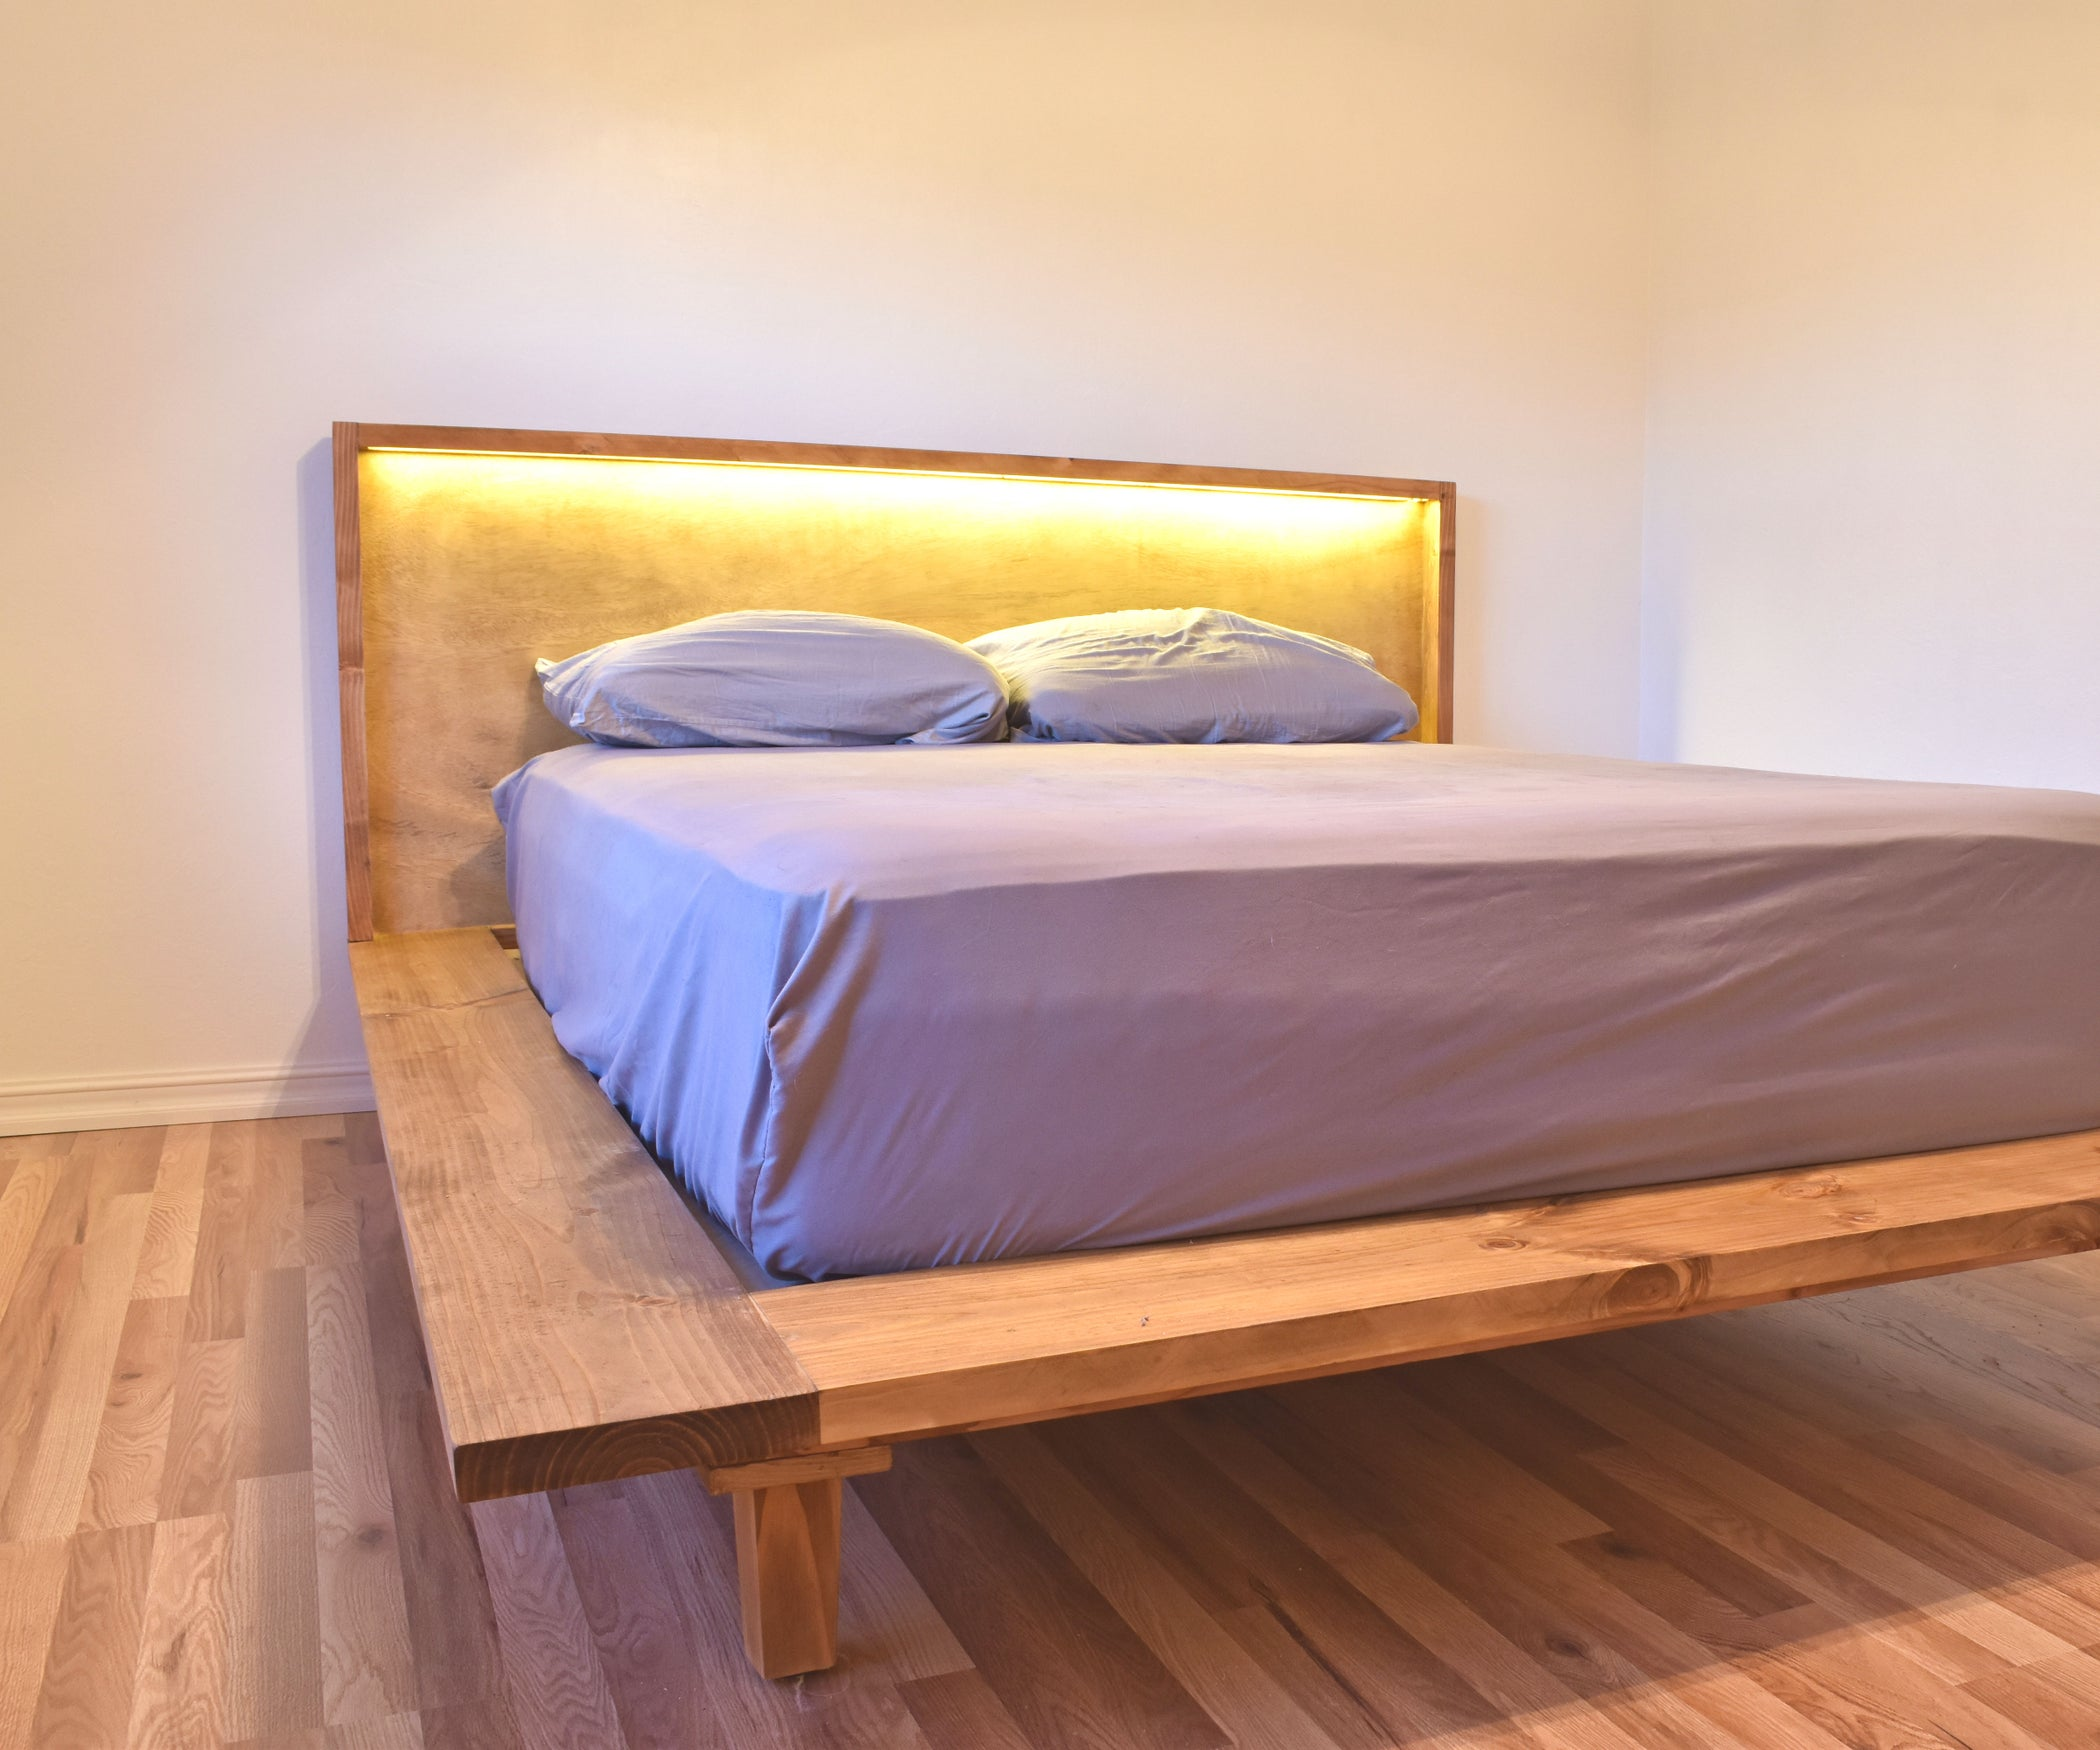 How To Build A Modern Platform Bed 4 Steps With Pictures